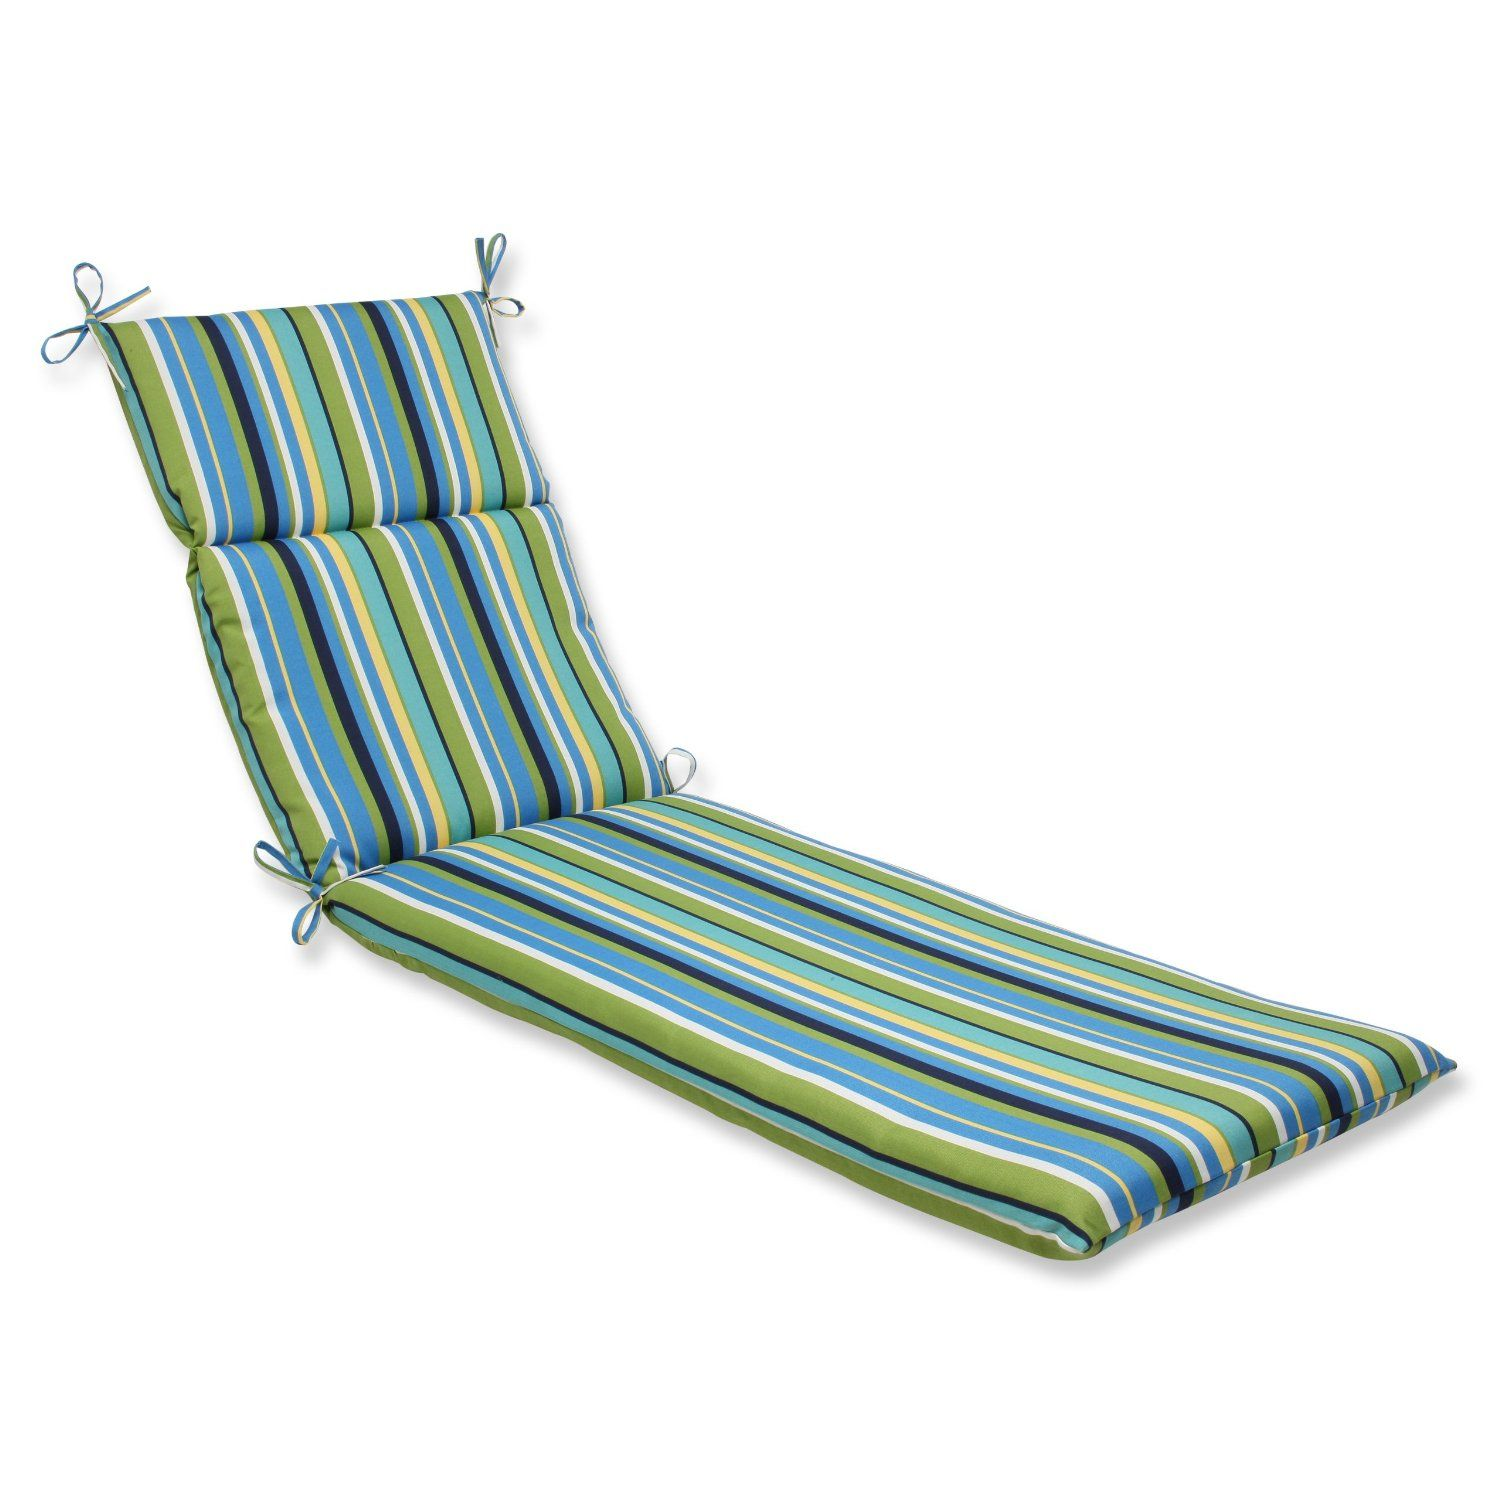 From Amazon For The Patio Furniture Pin Board Outdoor Patio Chaise Lounge Patio Chaise Lounge Cushions Outdoor Chaise Lounge Cushions